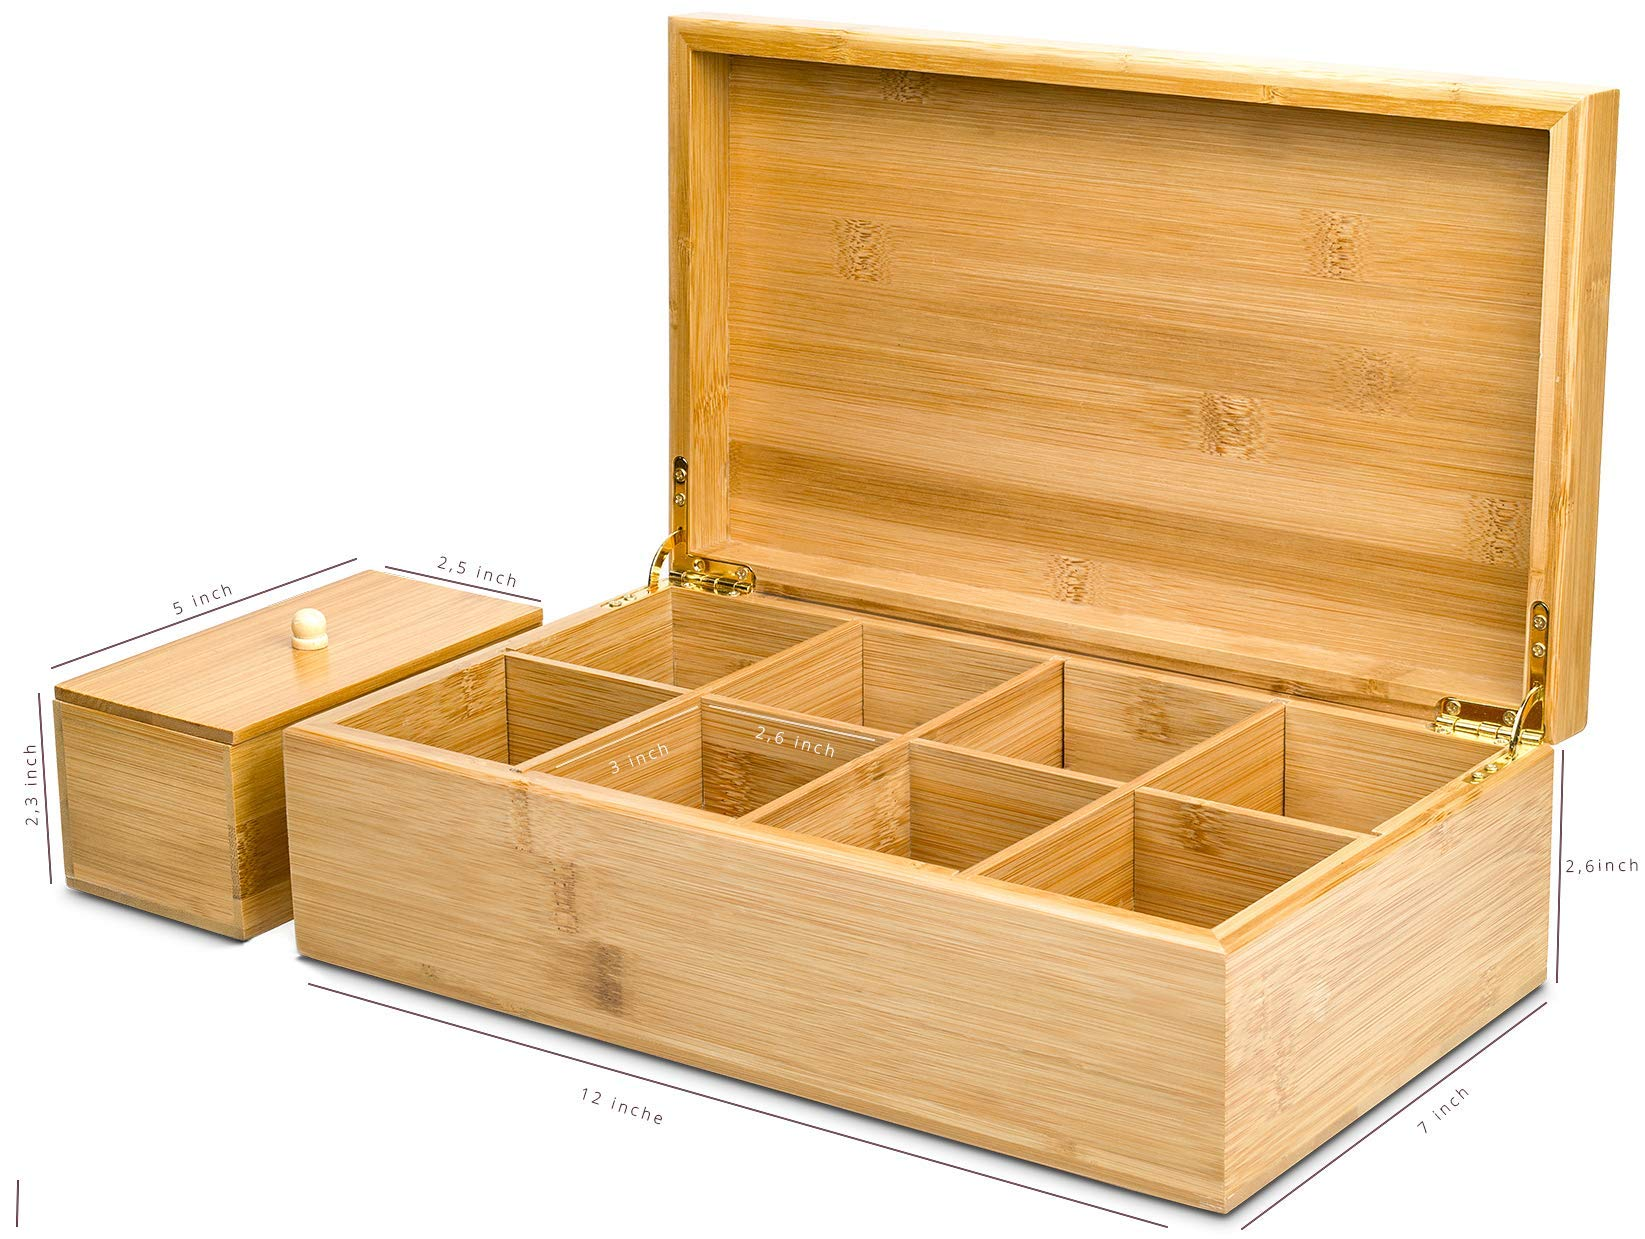 Lyevon Tea Storage Organizer Bamboo Chest Box with 8 Adjustable Compartments for Assorted Tea Bags or Spices -holds 125 Tea Bags by Lyevon (Image #5)